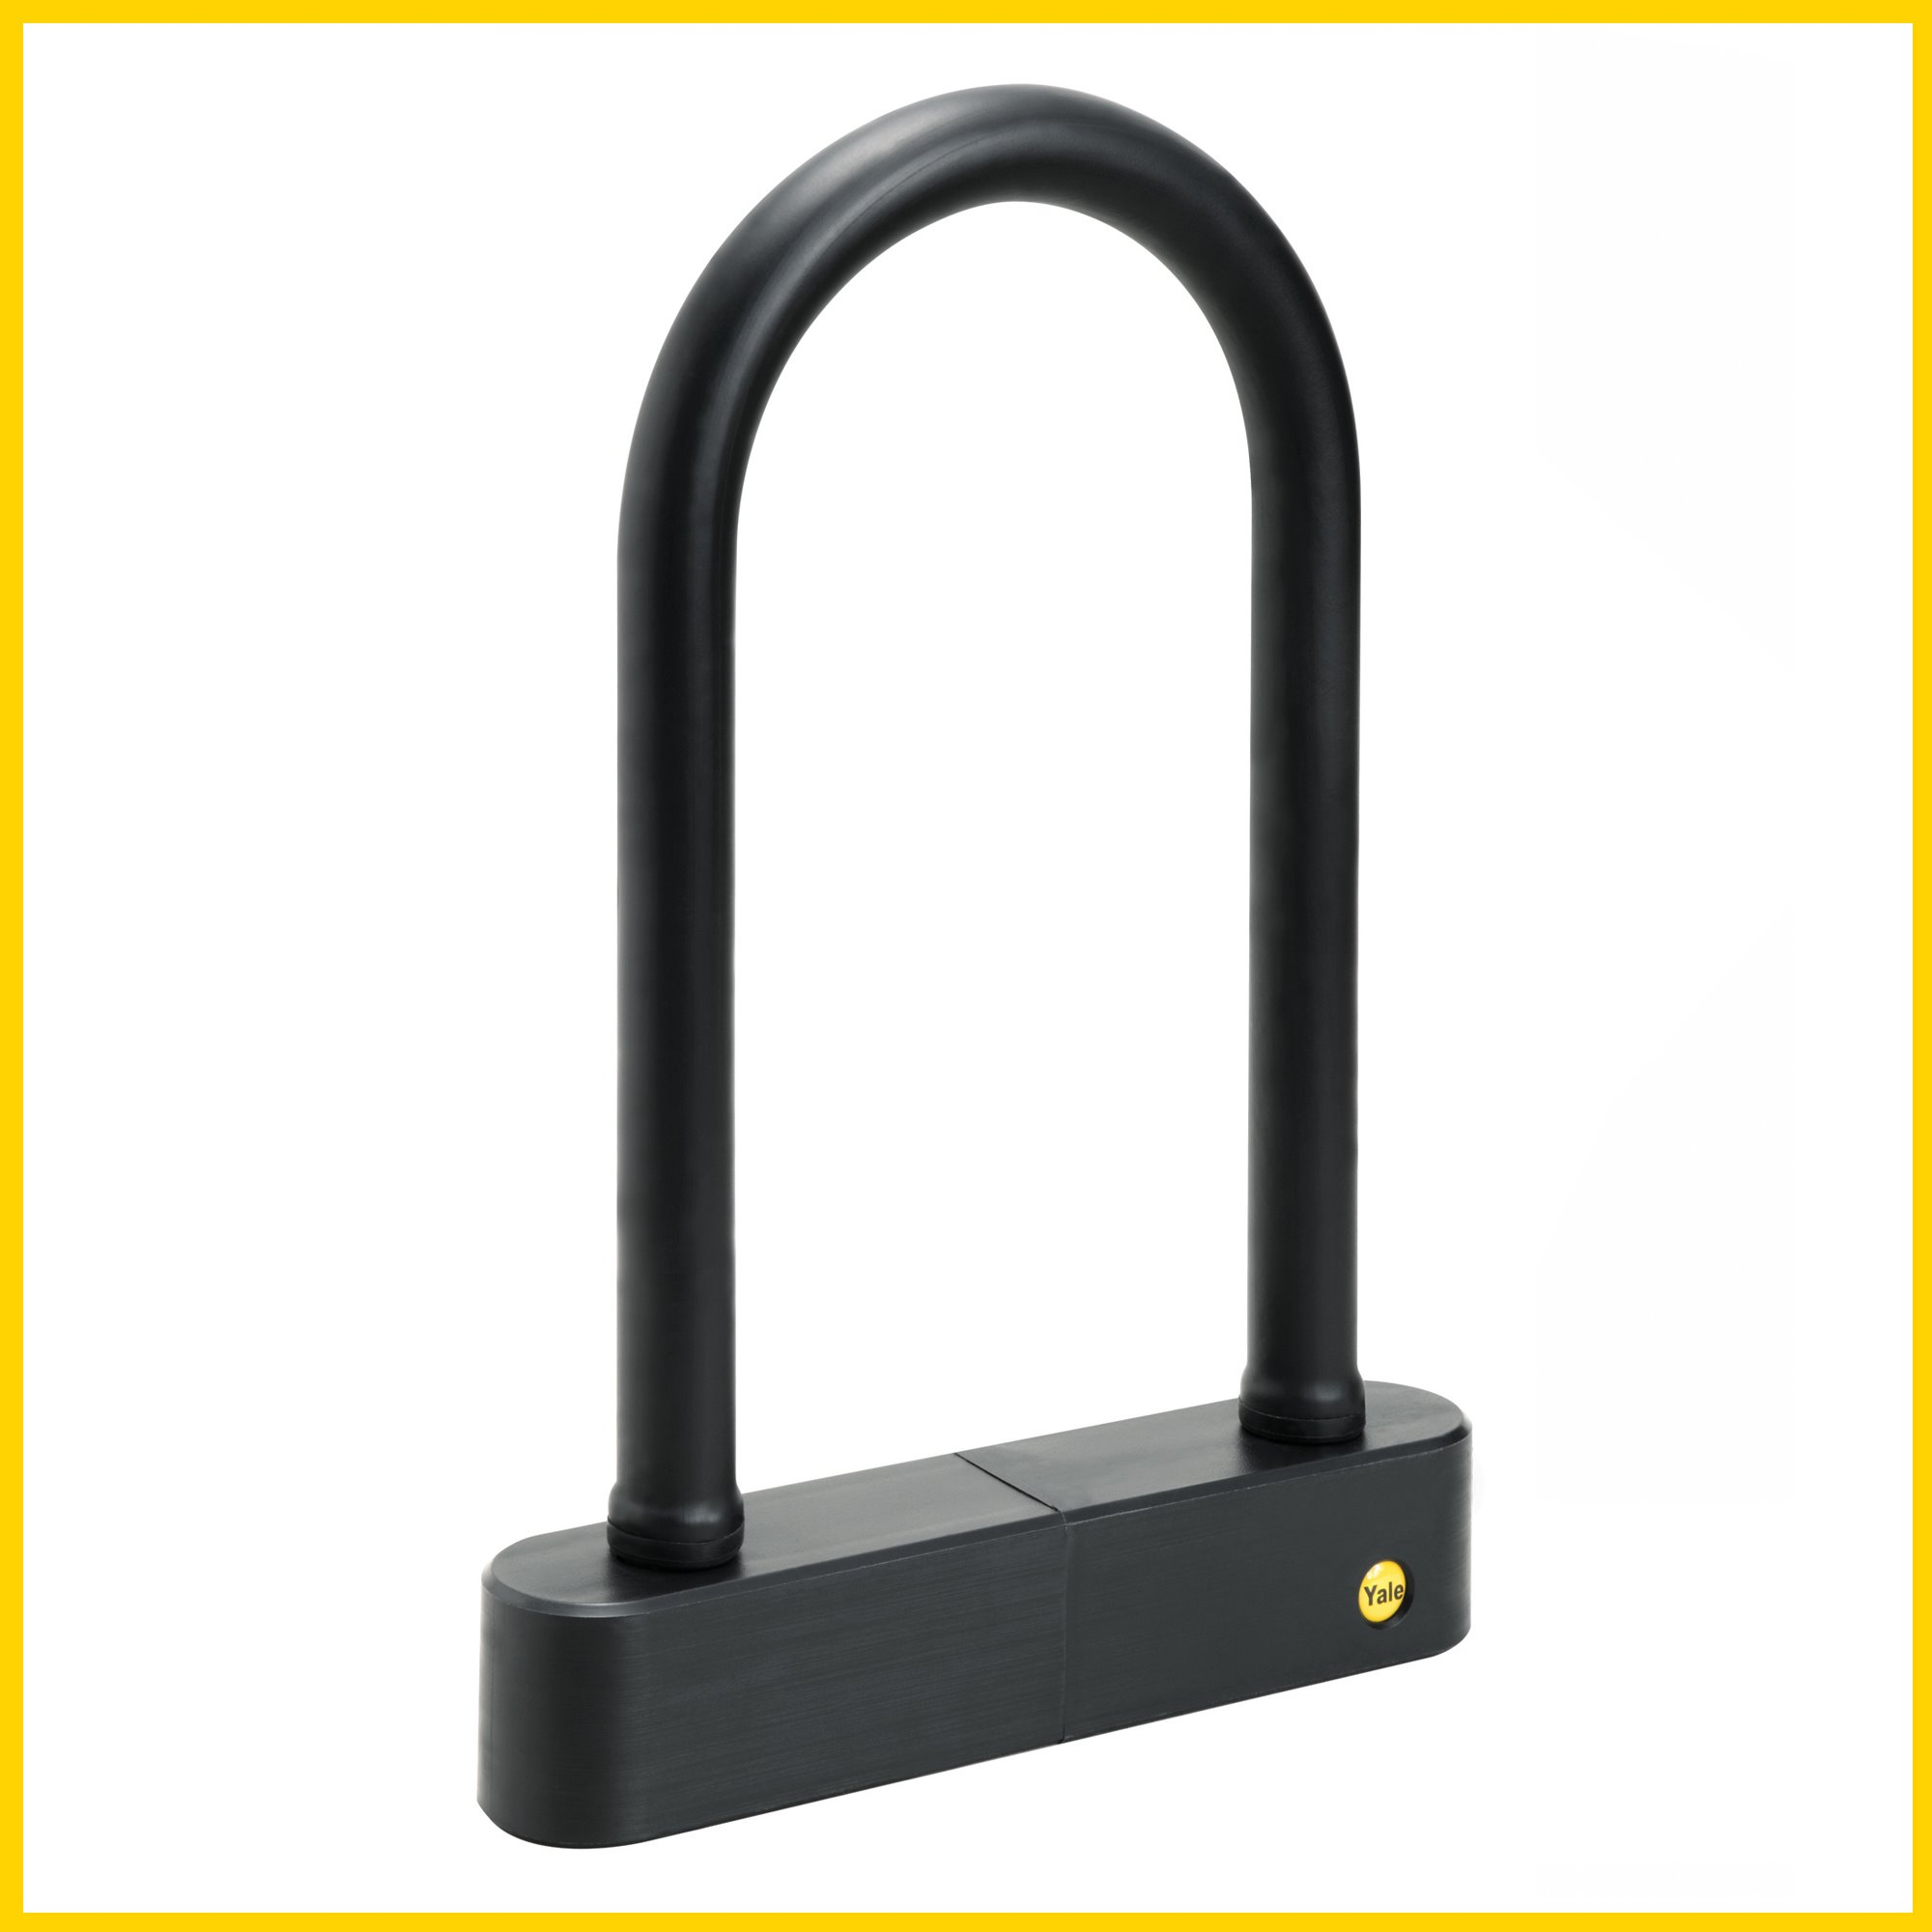 YUL - U Shaped Lock